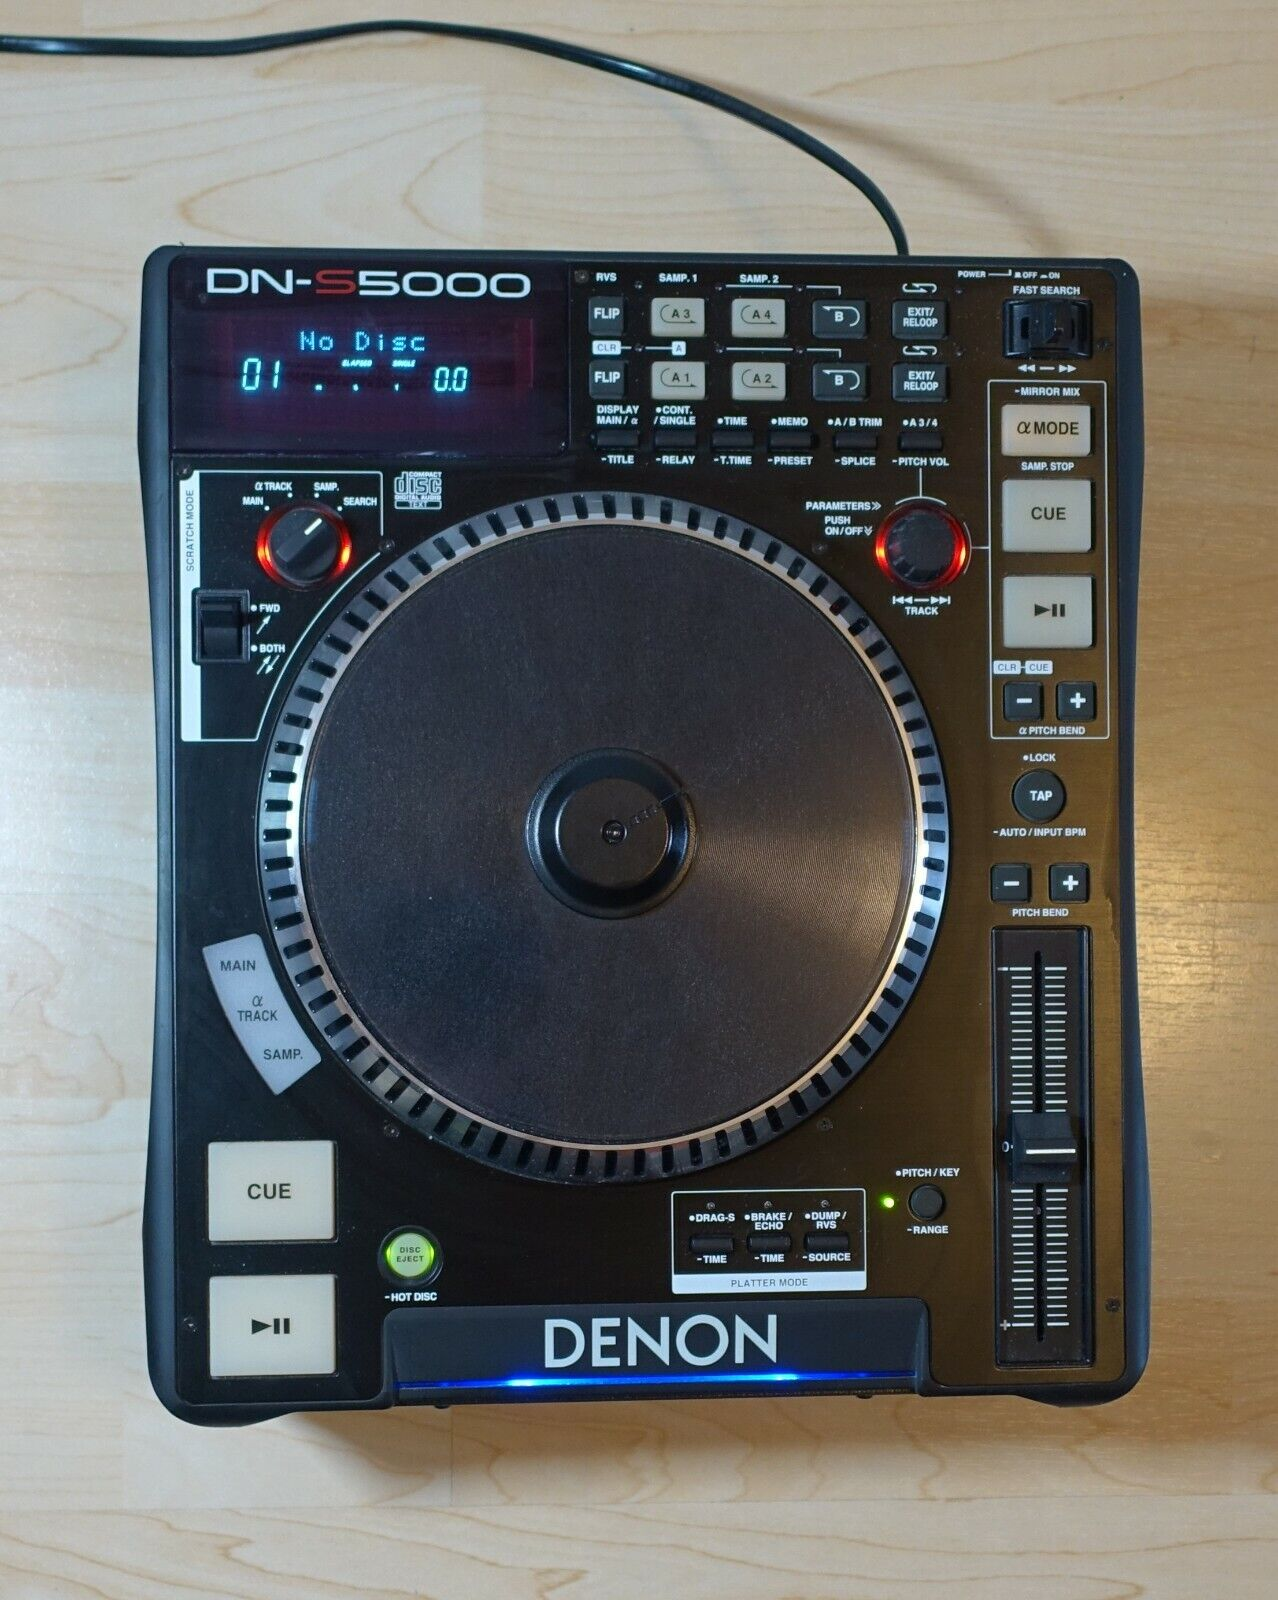 Dennon DN-S5000 CD Player Portable DJ Equipment Top